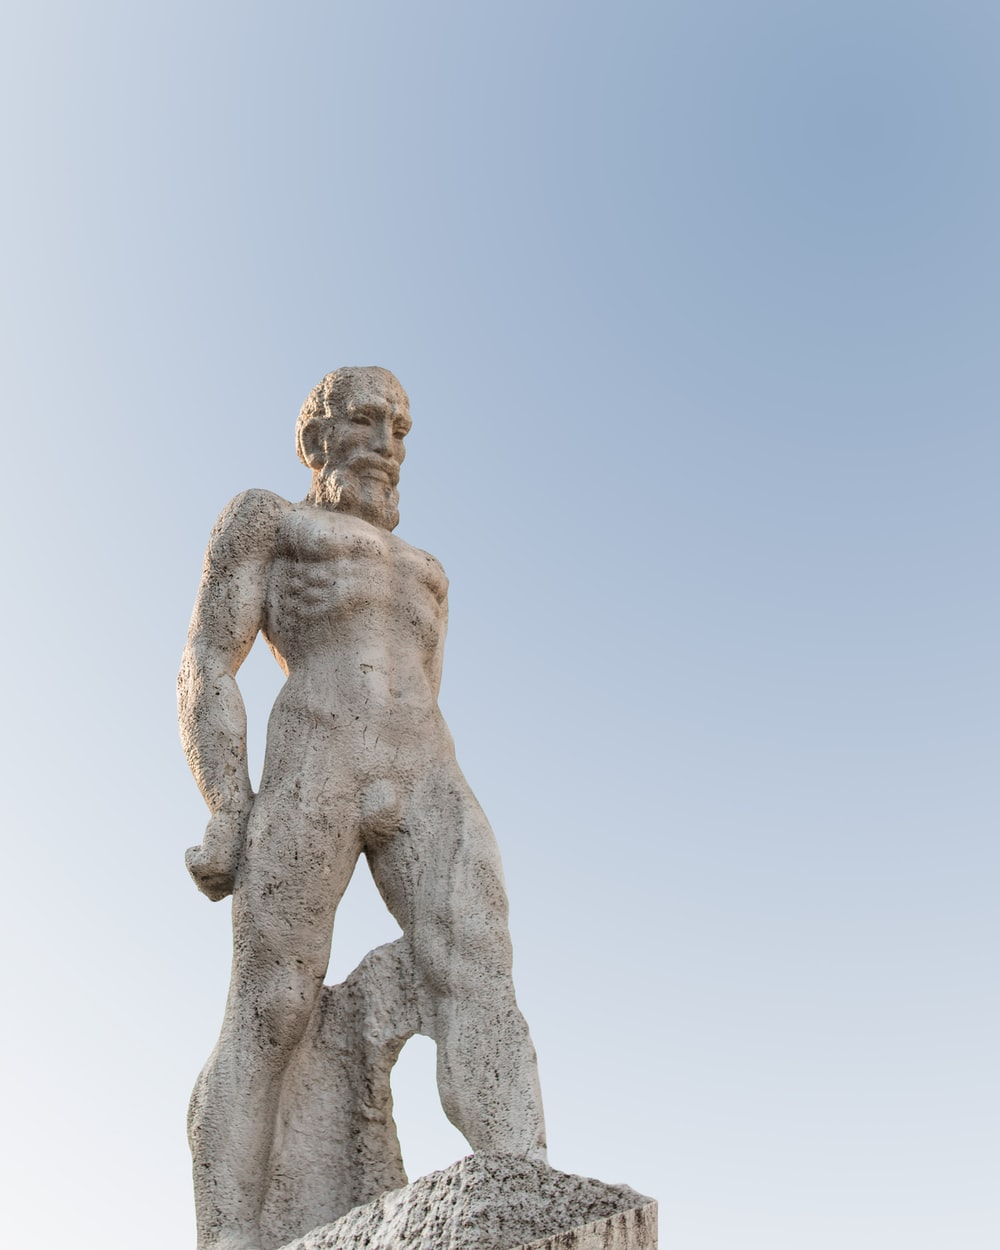 male statue during daytime